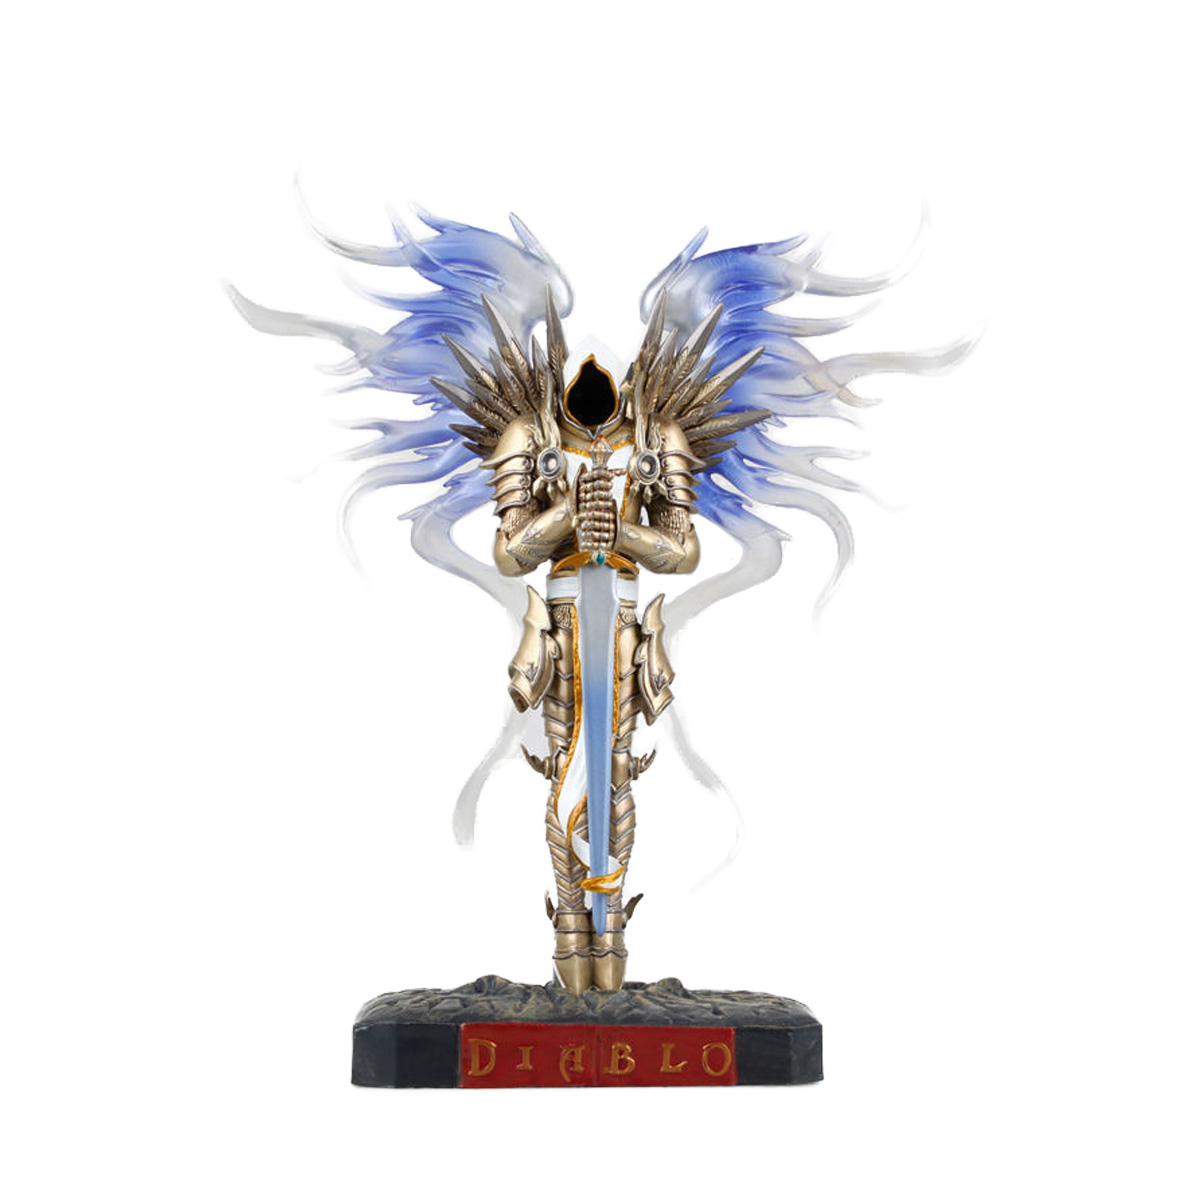 WOW World of WAR 3 Movie TWO WORLD ONE HOME Game Alliance&Horde Dark Archangel Tyrael priest PVC Action Figures Toys(China (Mainland))